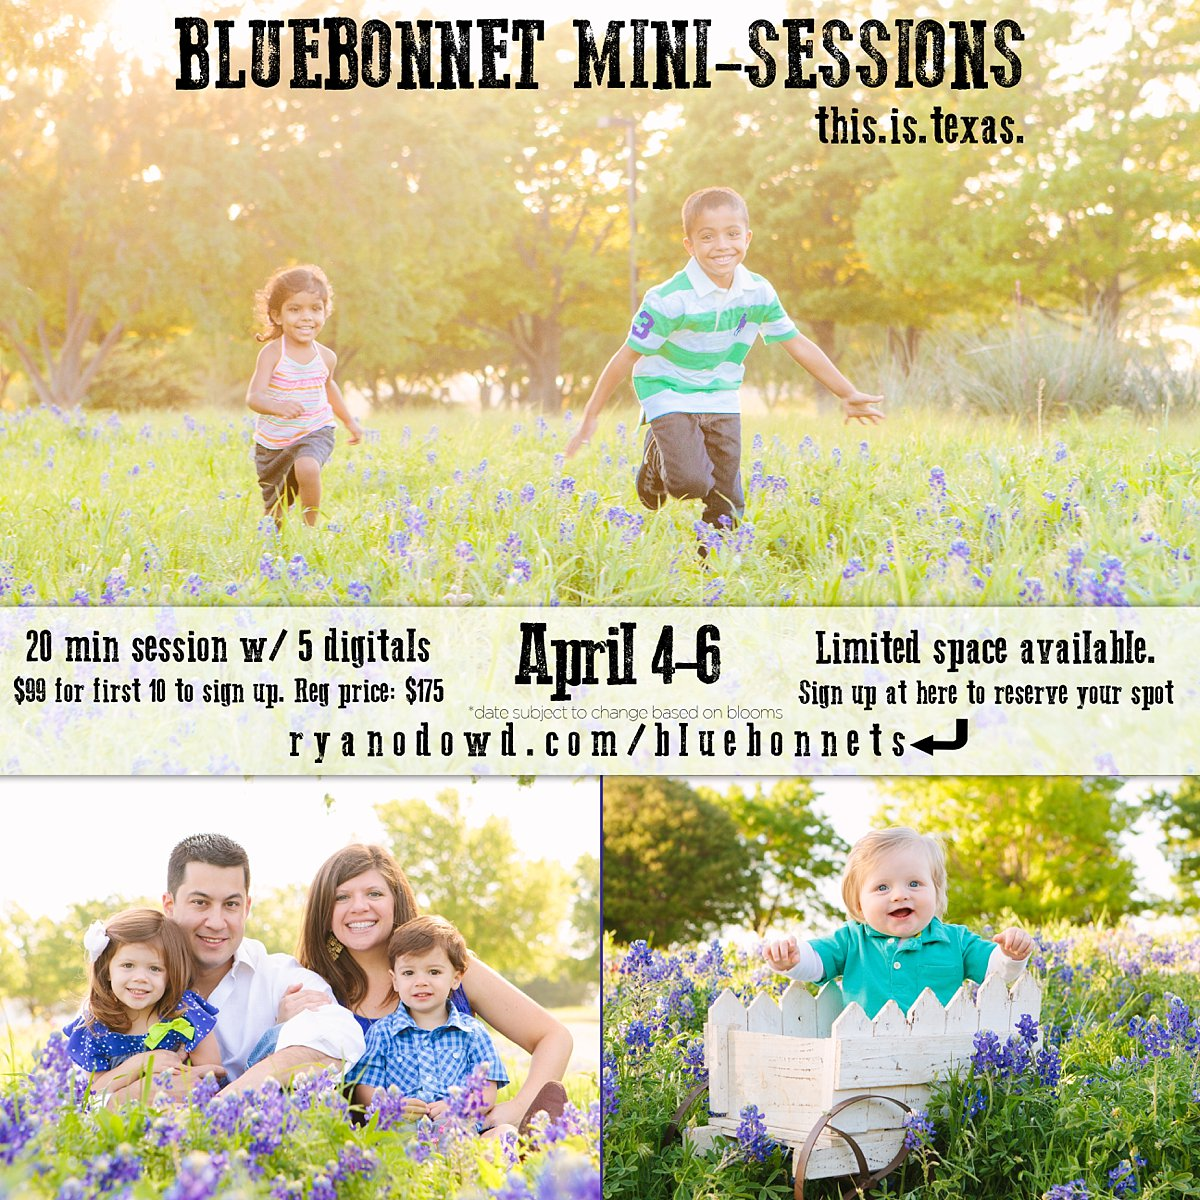 2014 frisco mckinney plano bluebonnet mini sessions